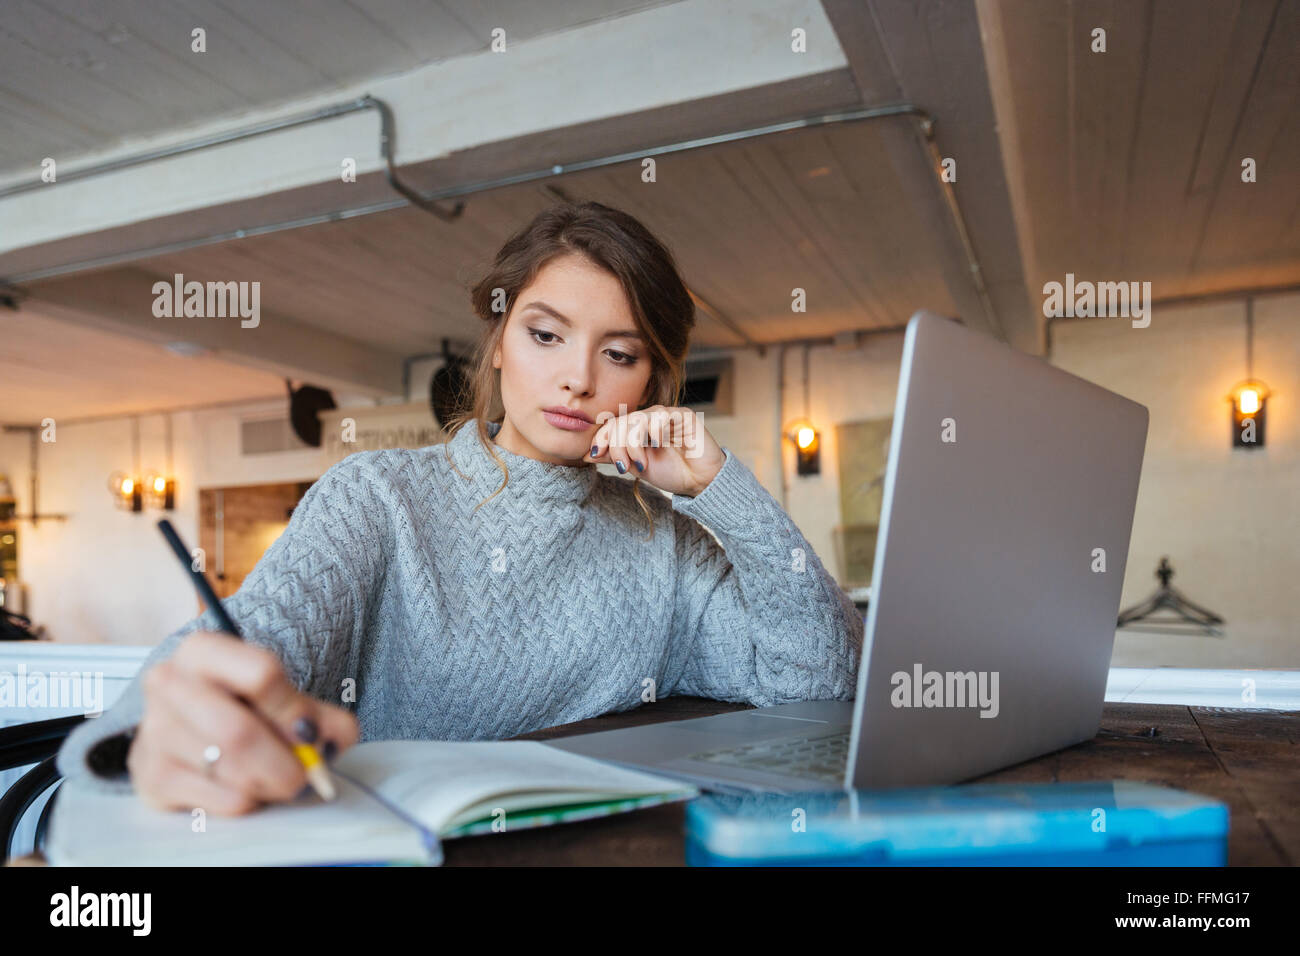 Woman working with laptop computer and notepad in cafe - Stock Image